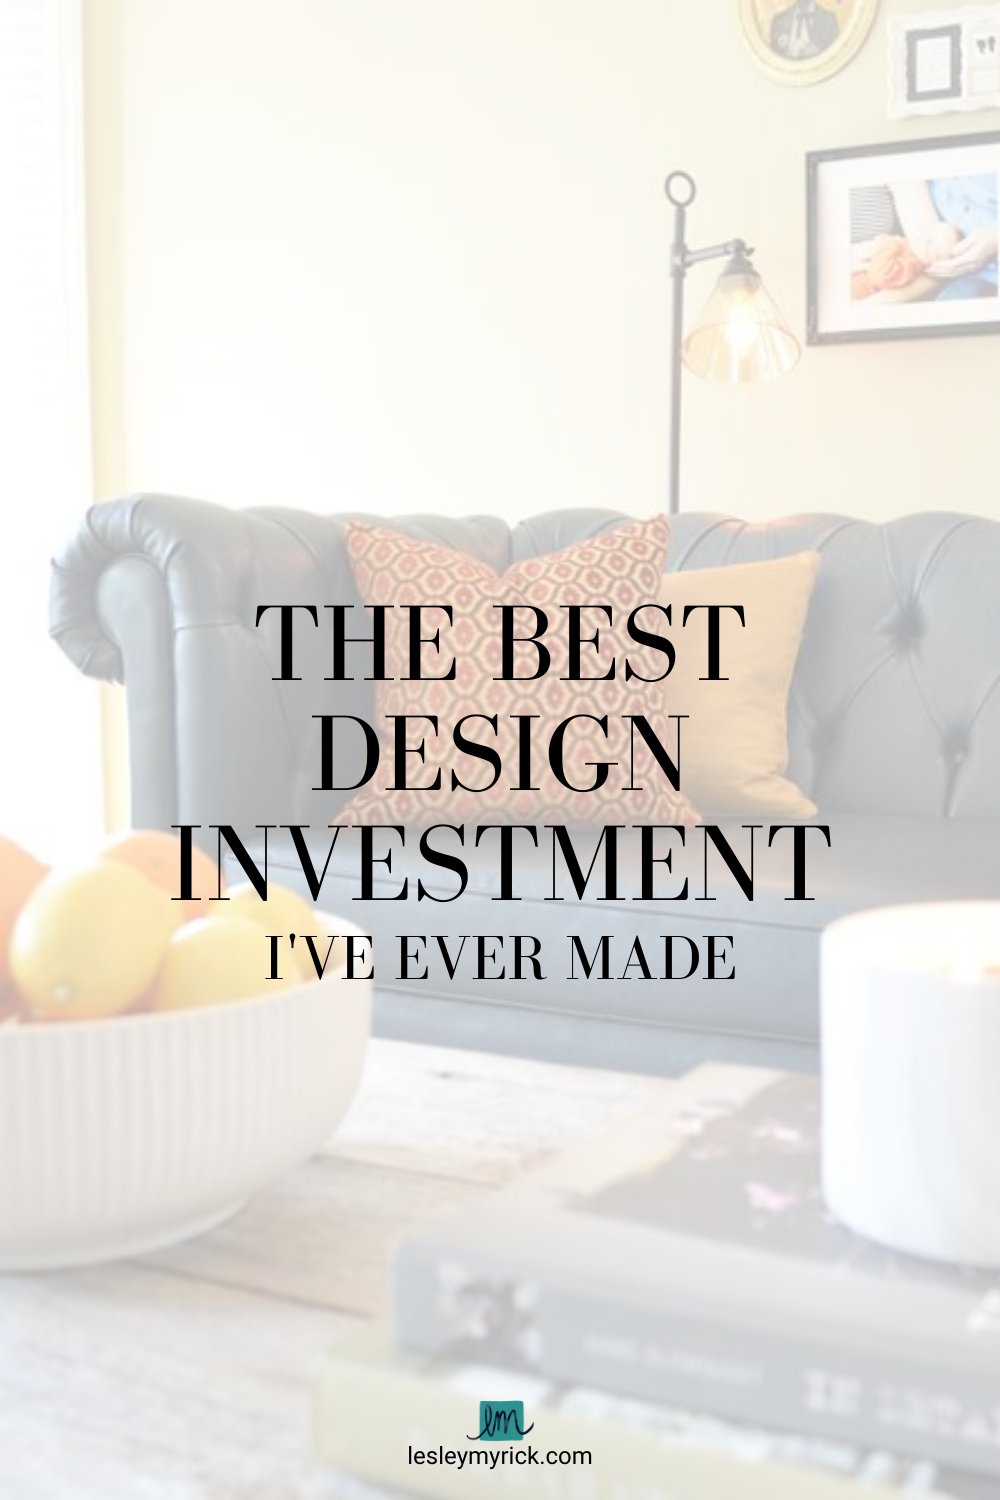 The best design investment I've ever made...was also the WORST design investment I've ever made! Here's why.